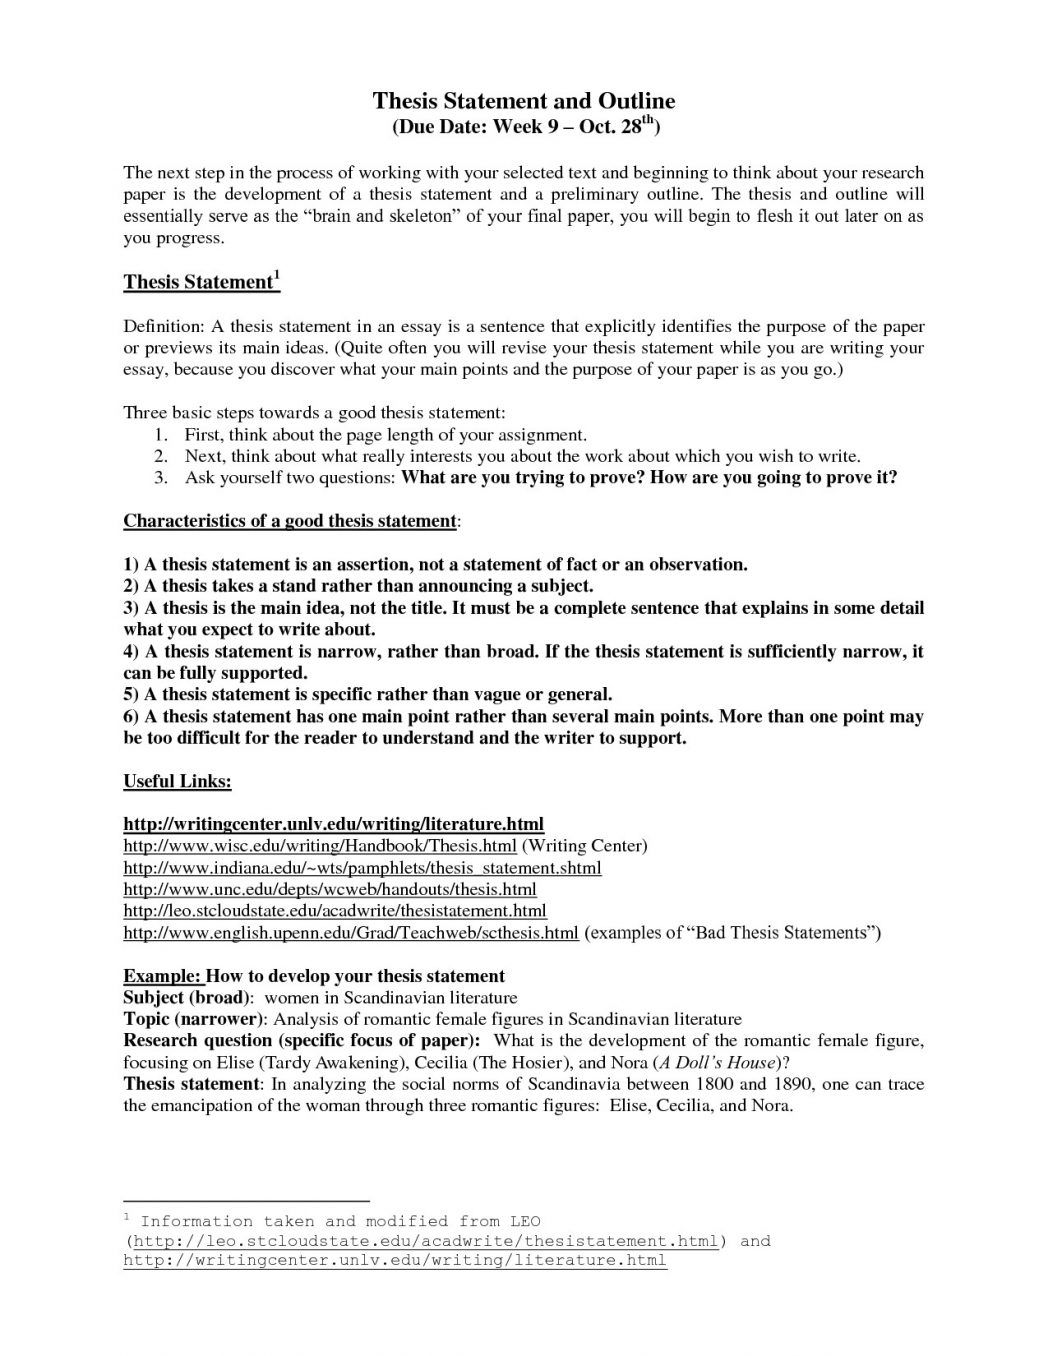 020 Thesis Statementamples For Essays Cute Easy Pics Your Argumentative Writing Good Persuasive Essay H Compare Contrast How To Write An Informativeample Of Do You Impressive Statement Examples Analysis Response Papers About Yourself Full